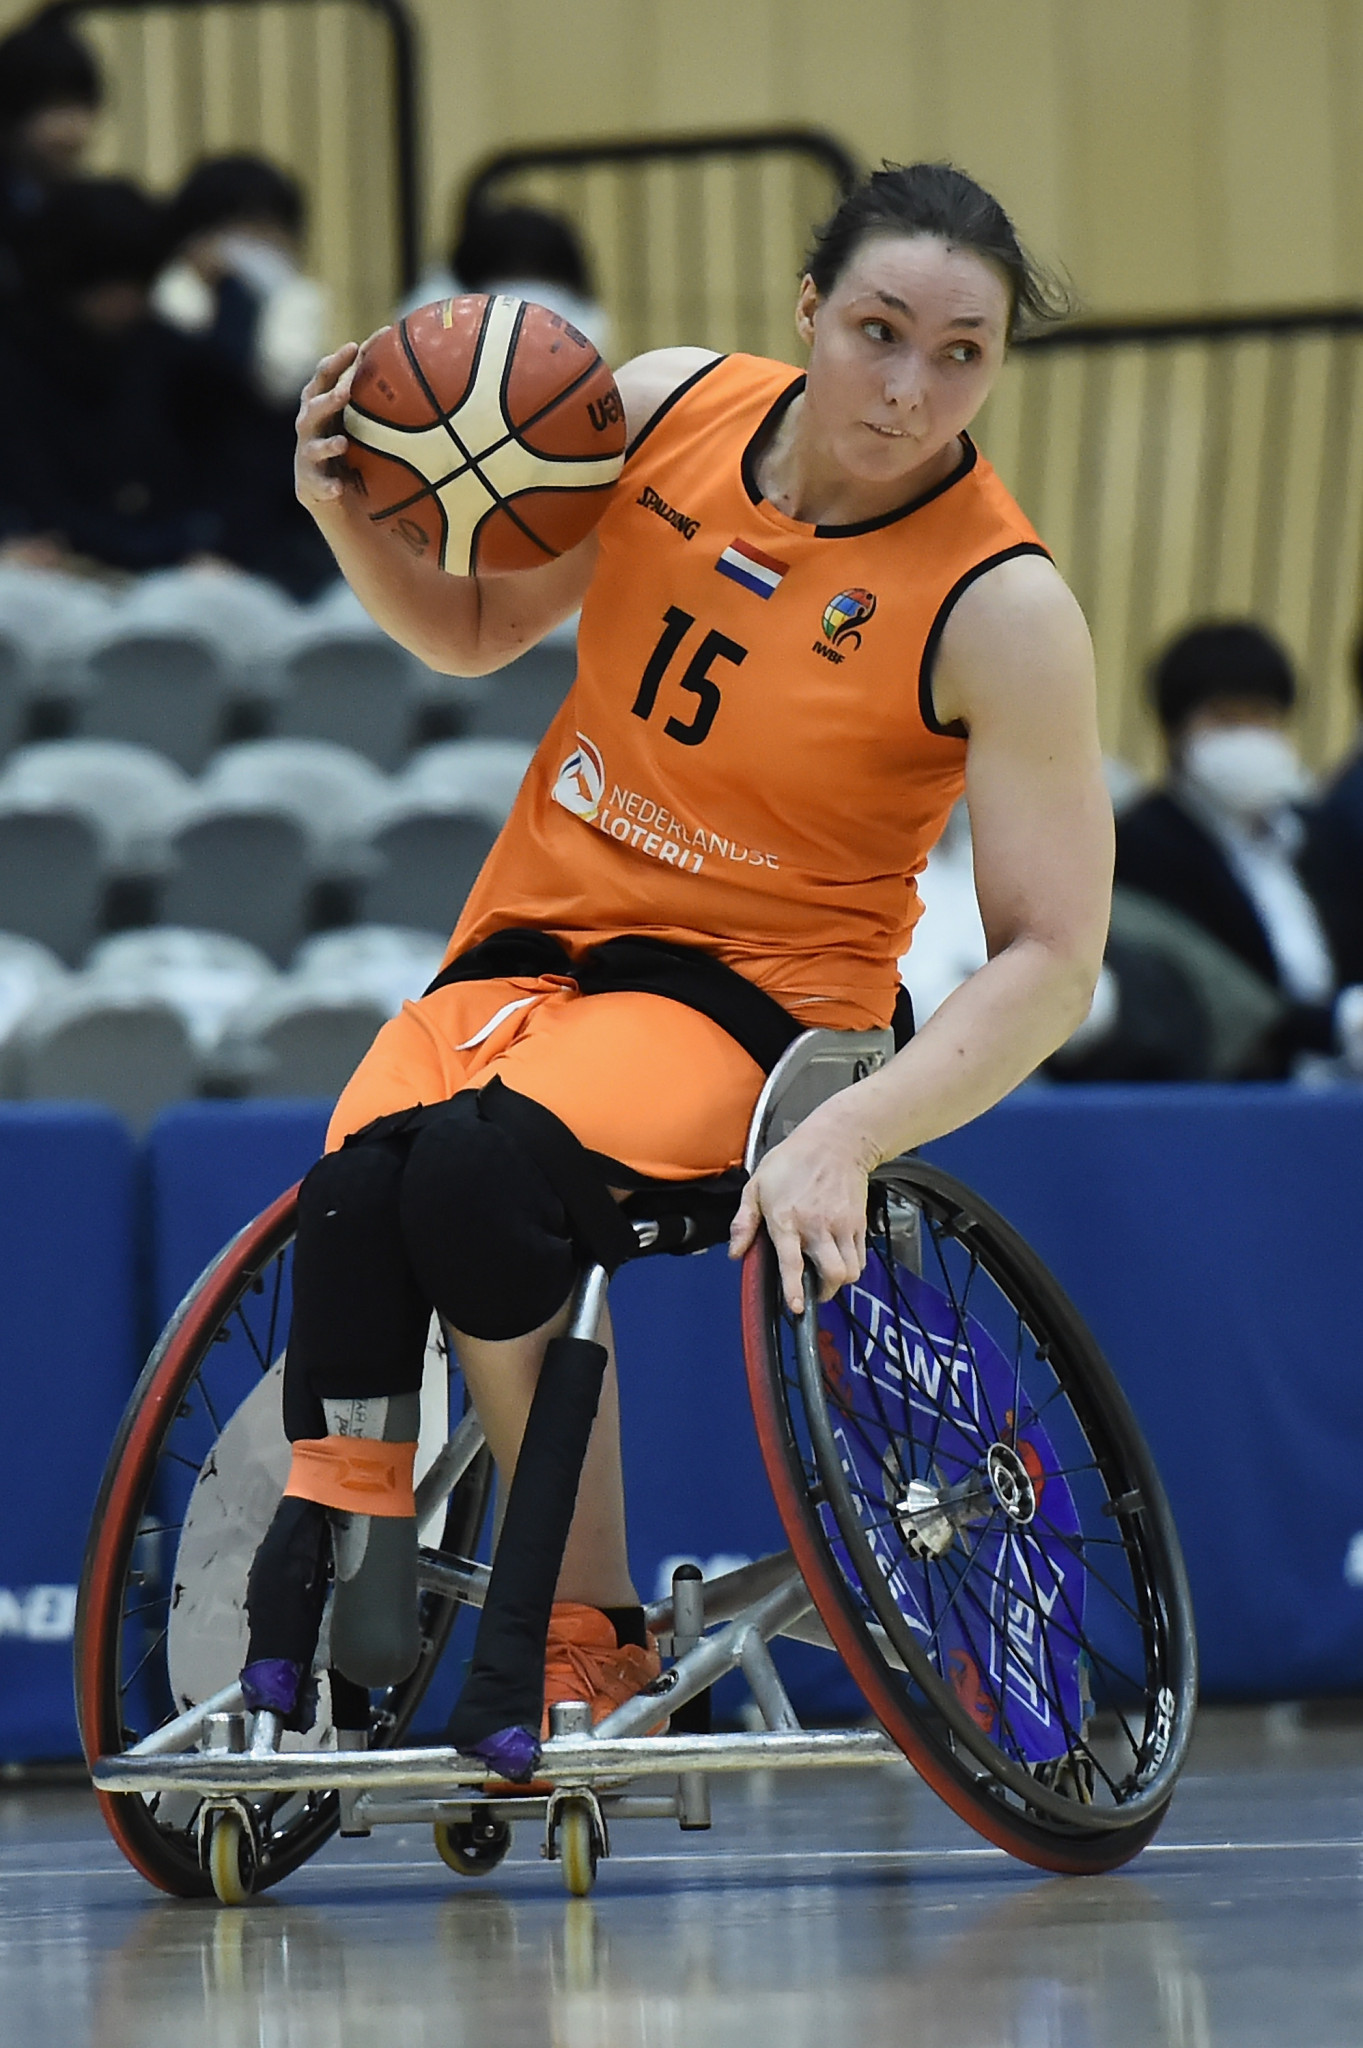 The Netherlands are reportedly set to host the 2023 European Parasports Championships ©Getty Images